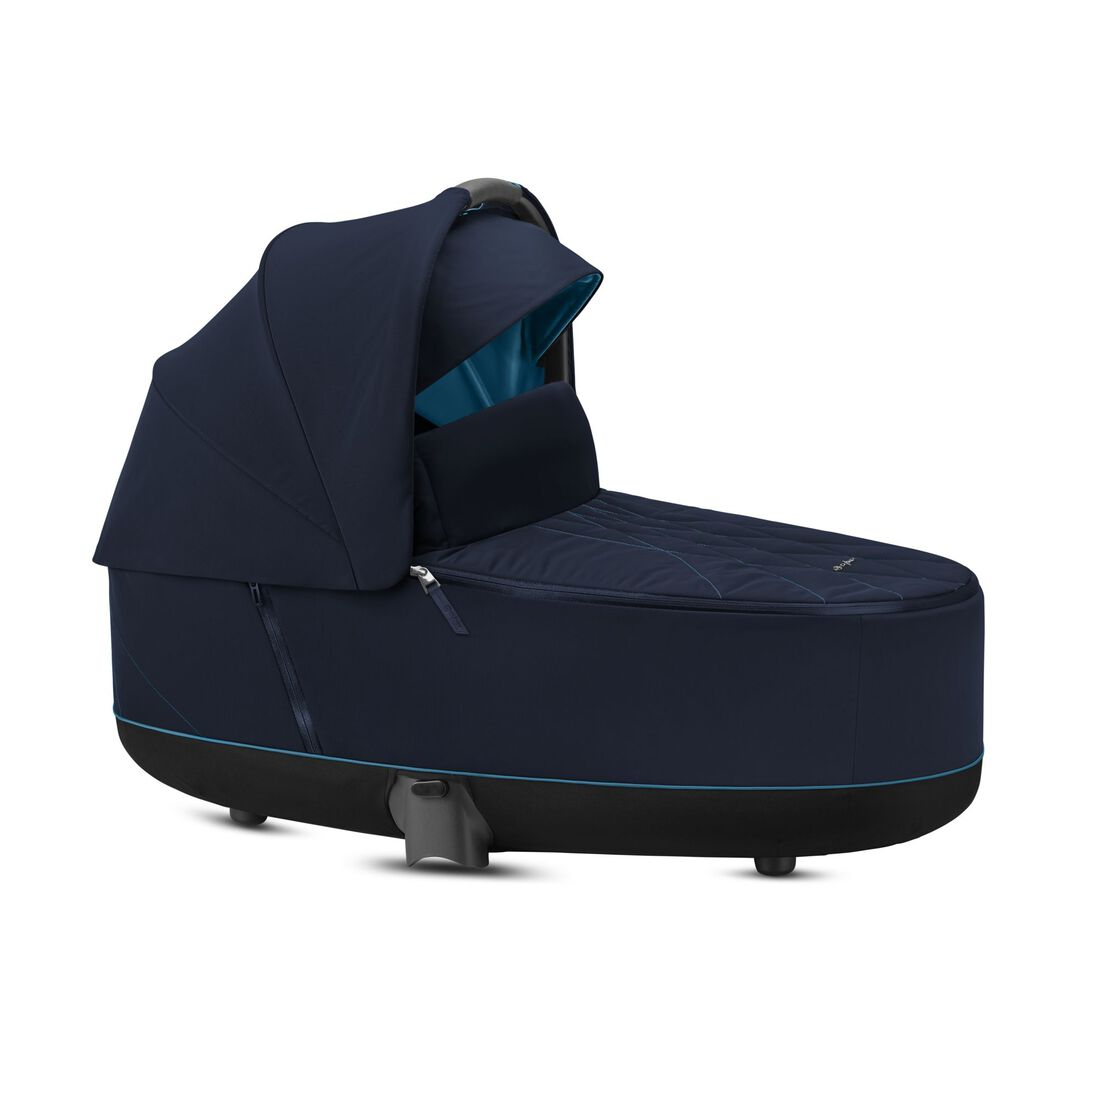 CYBEX Priam Lux Carry Cot - Nautical Blue in Nautical Blue large image number 2